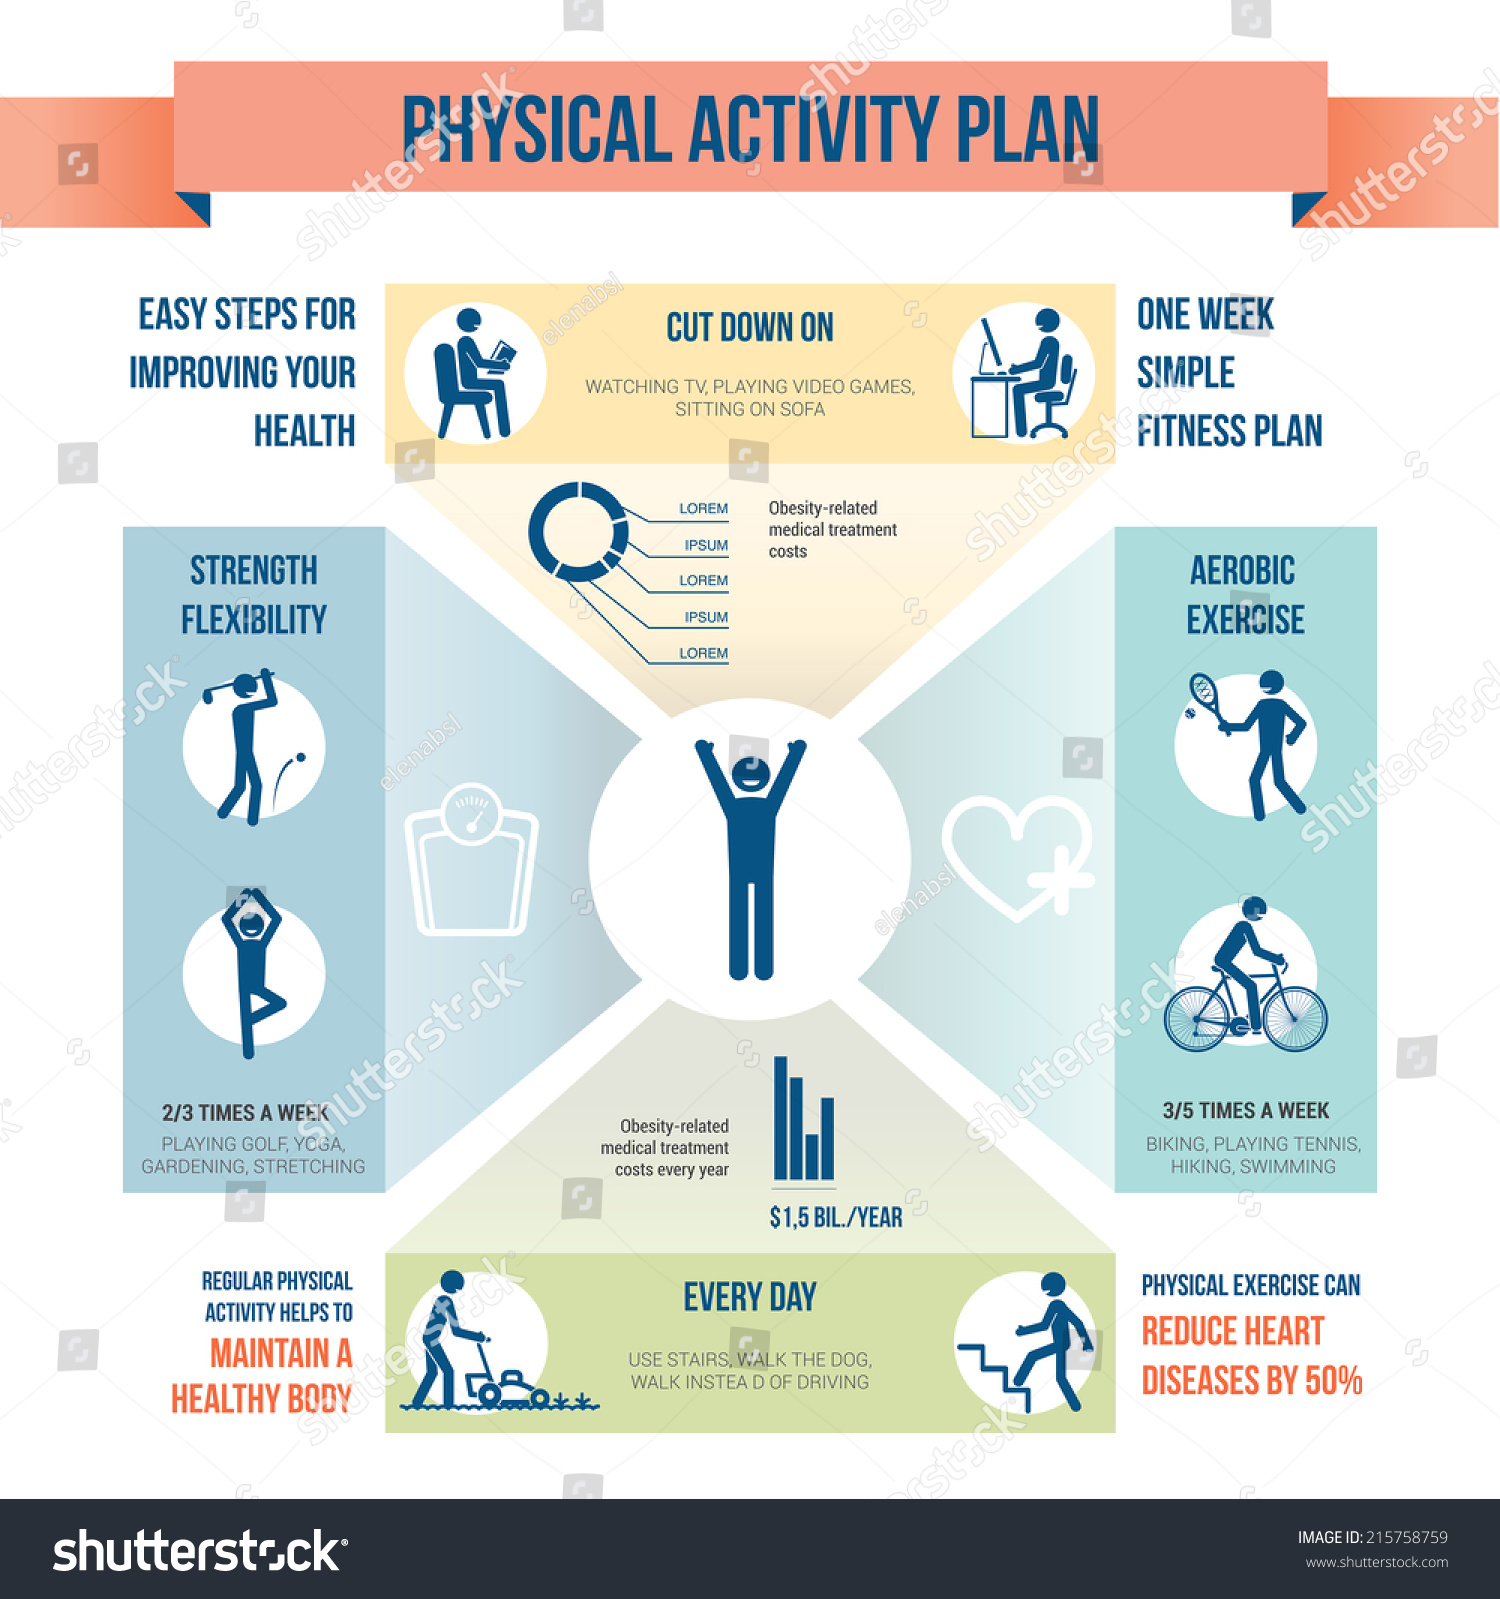 planning a physical activity The taskforce compiled a list of sample physical activity plans which may assist local governments and other key stakeholders in developing their own physical activity.